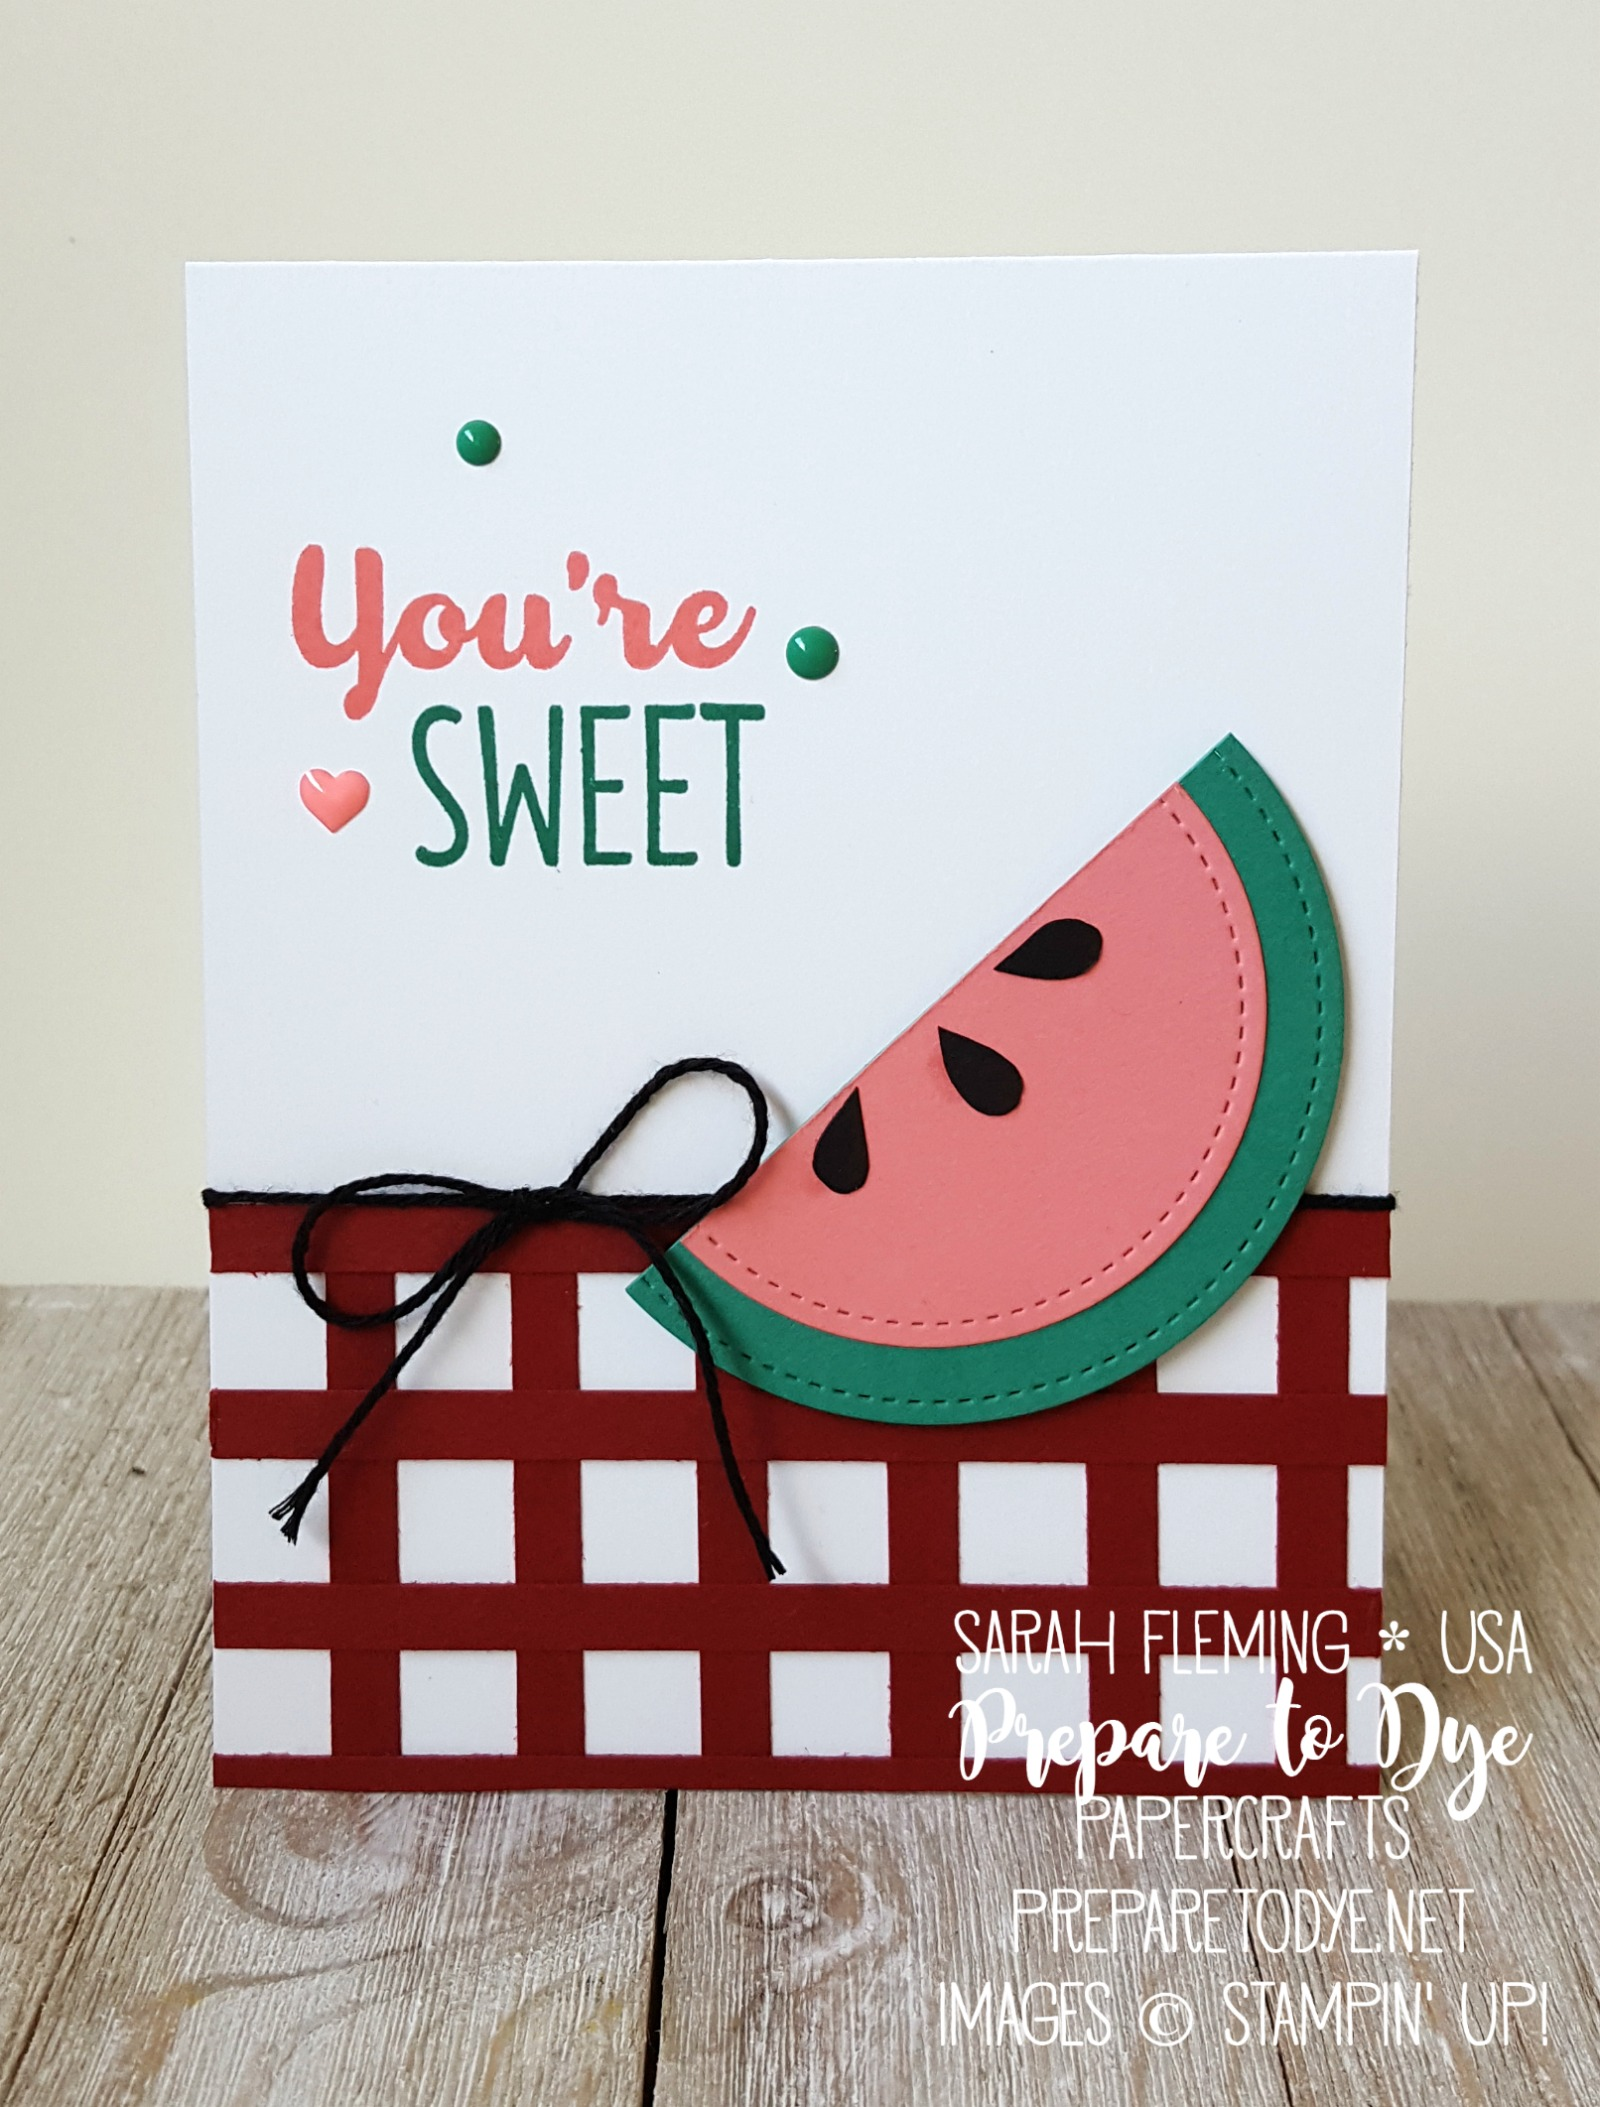 Stampin' Up! handmade card, Cool Treats, watermelon & picnic table paper piecing - Sarah Fleming - Prepare to Dye Papercrafts